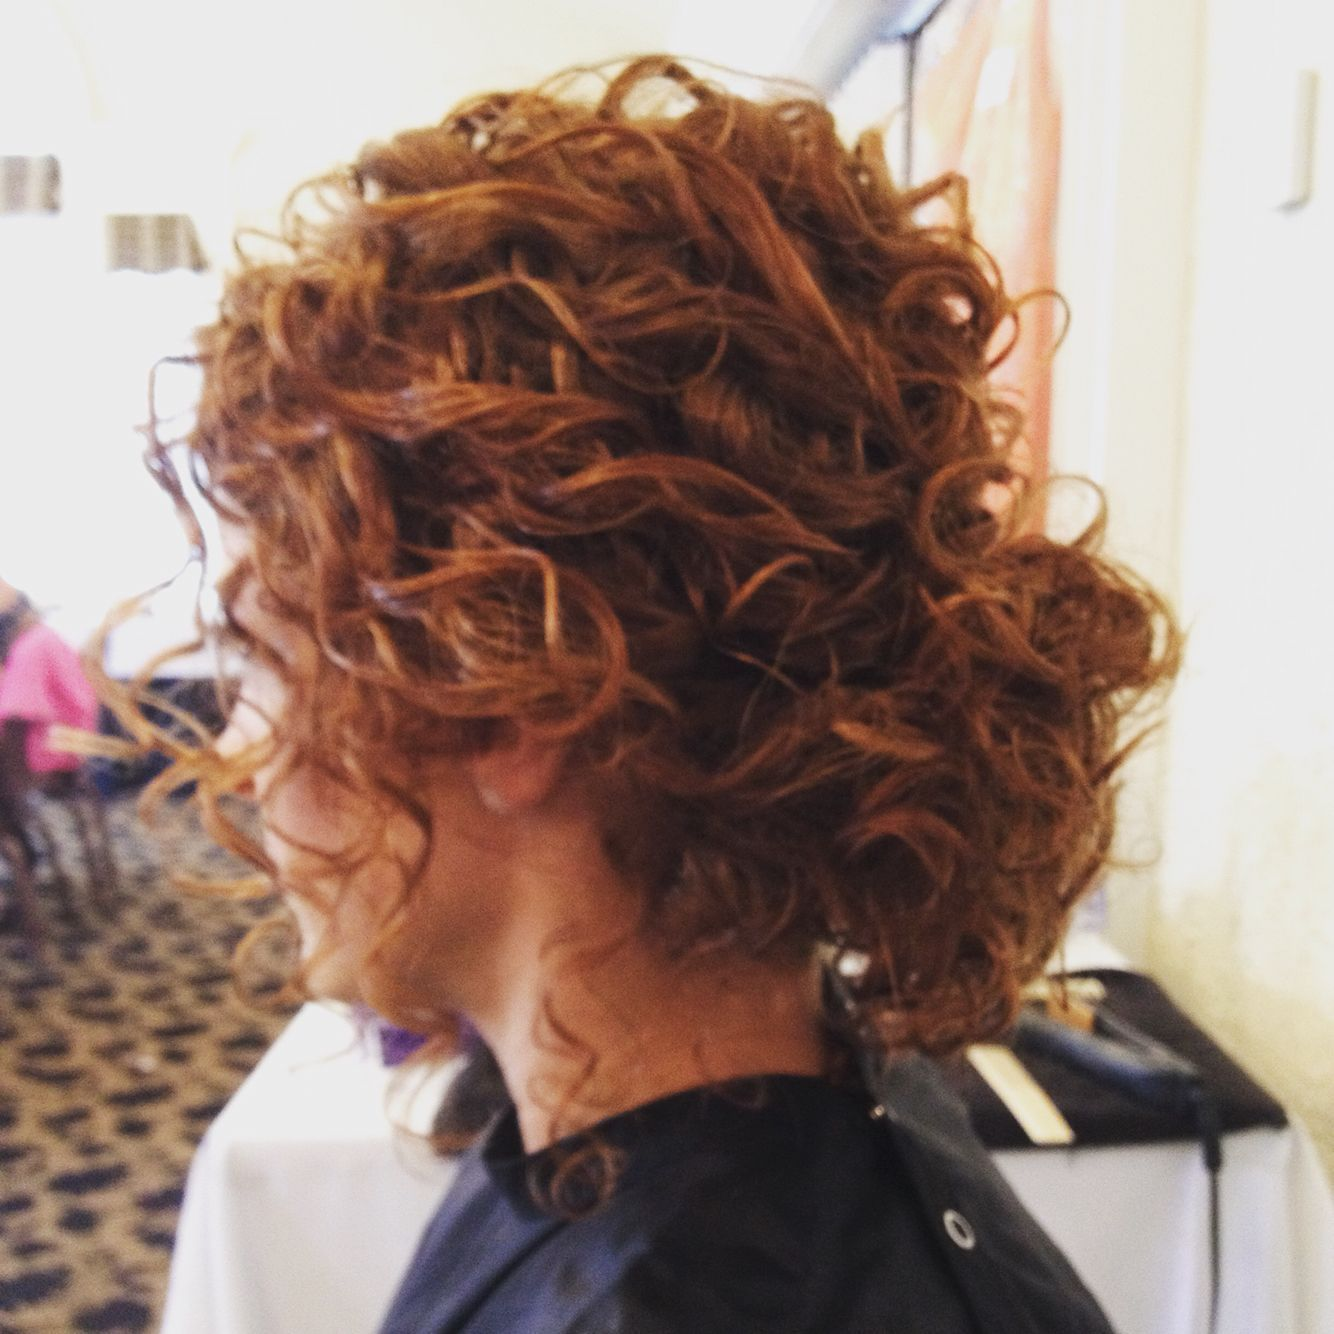 Juda Hairstyle For Curly Hair Curly Hairstyle Hairstylesforcurlyhair In 2020 Curly Hair Styles Naturally Hair Styles Curly Hair Updo